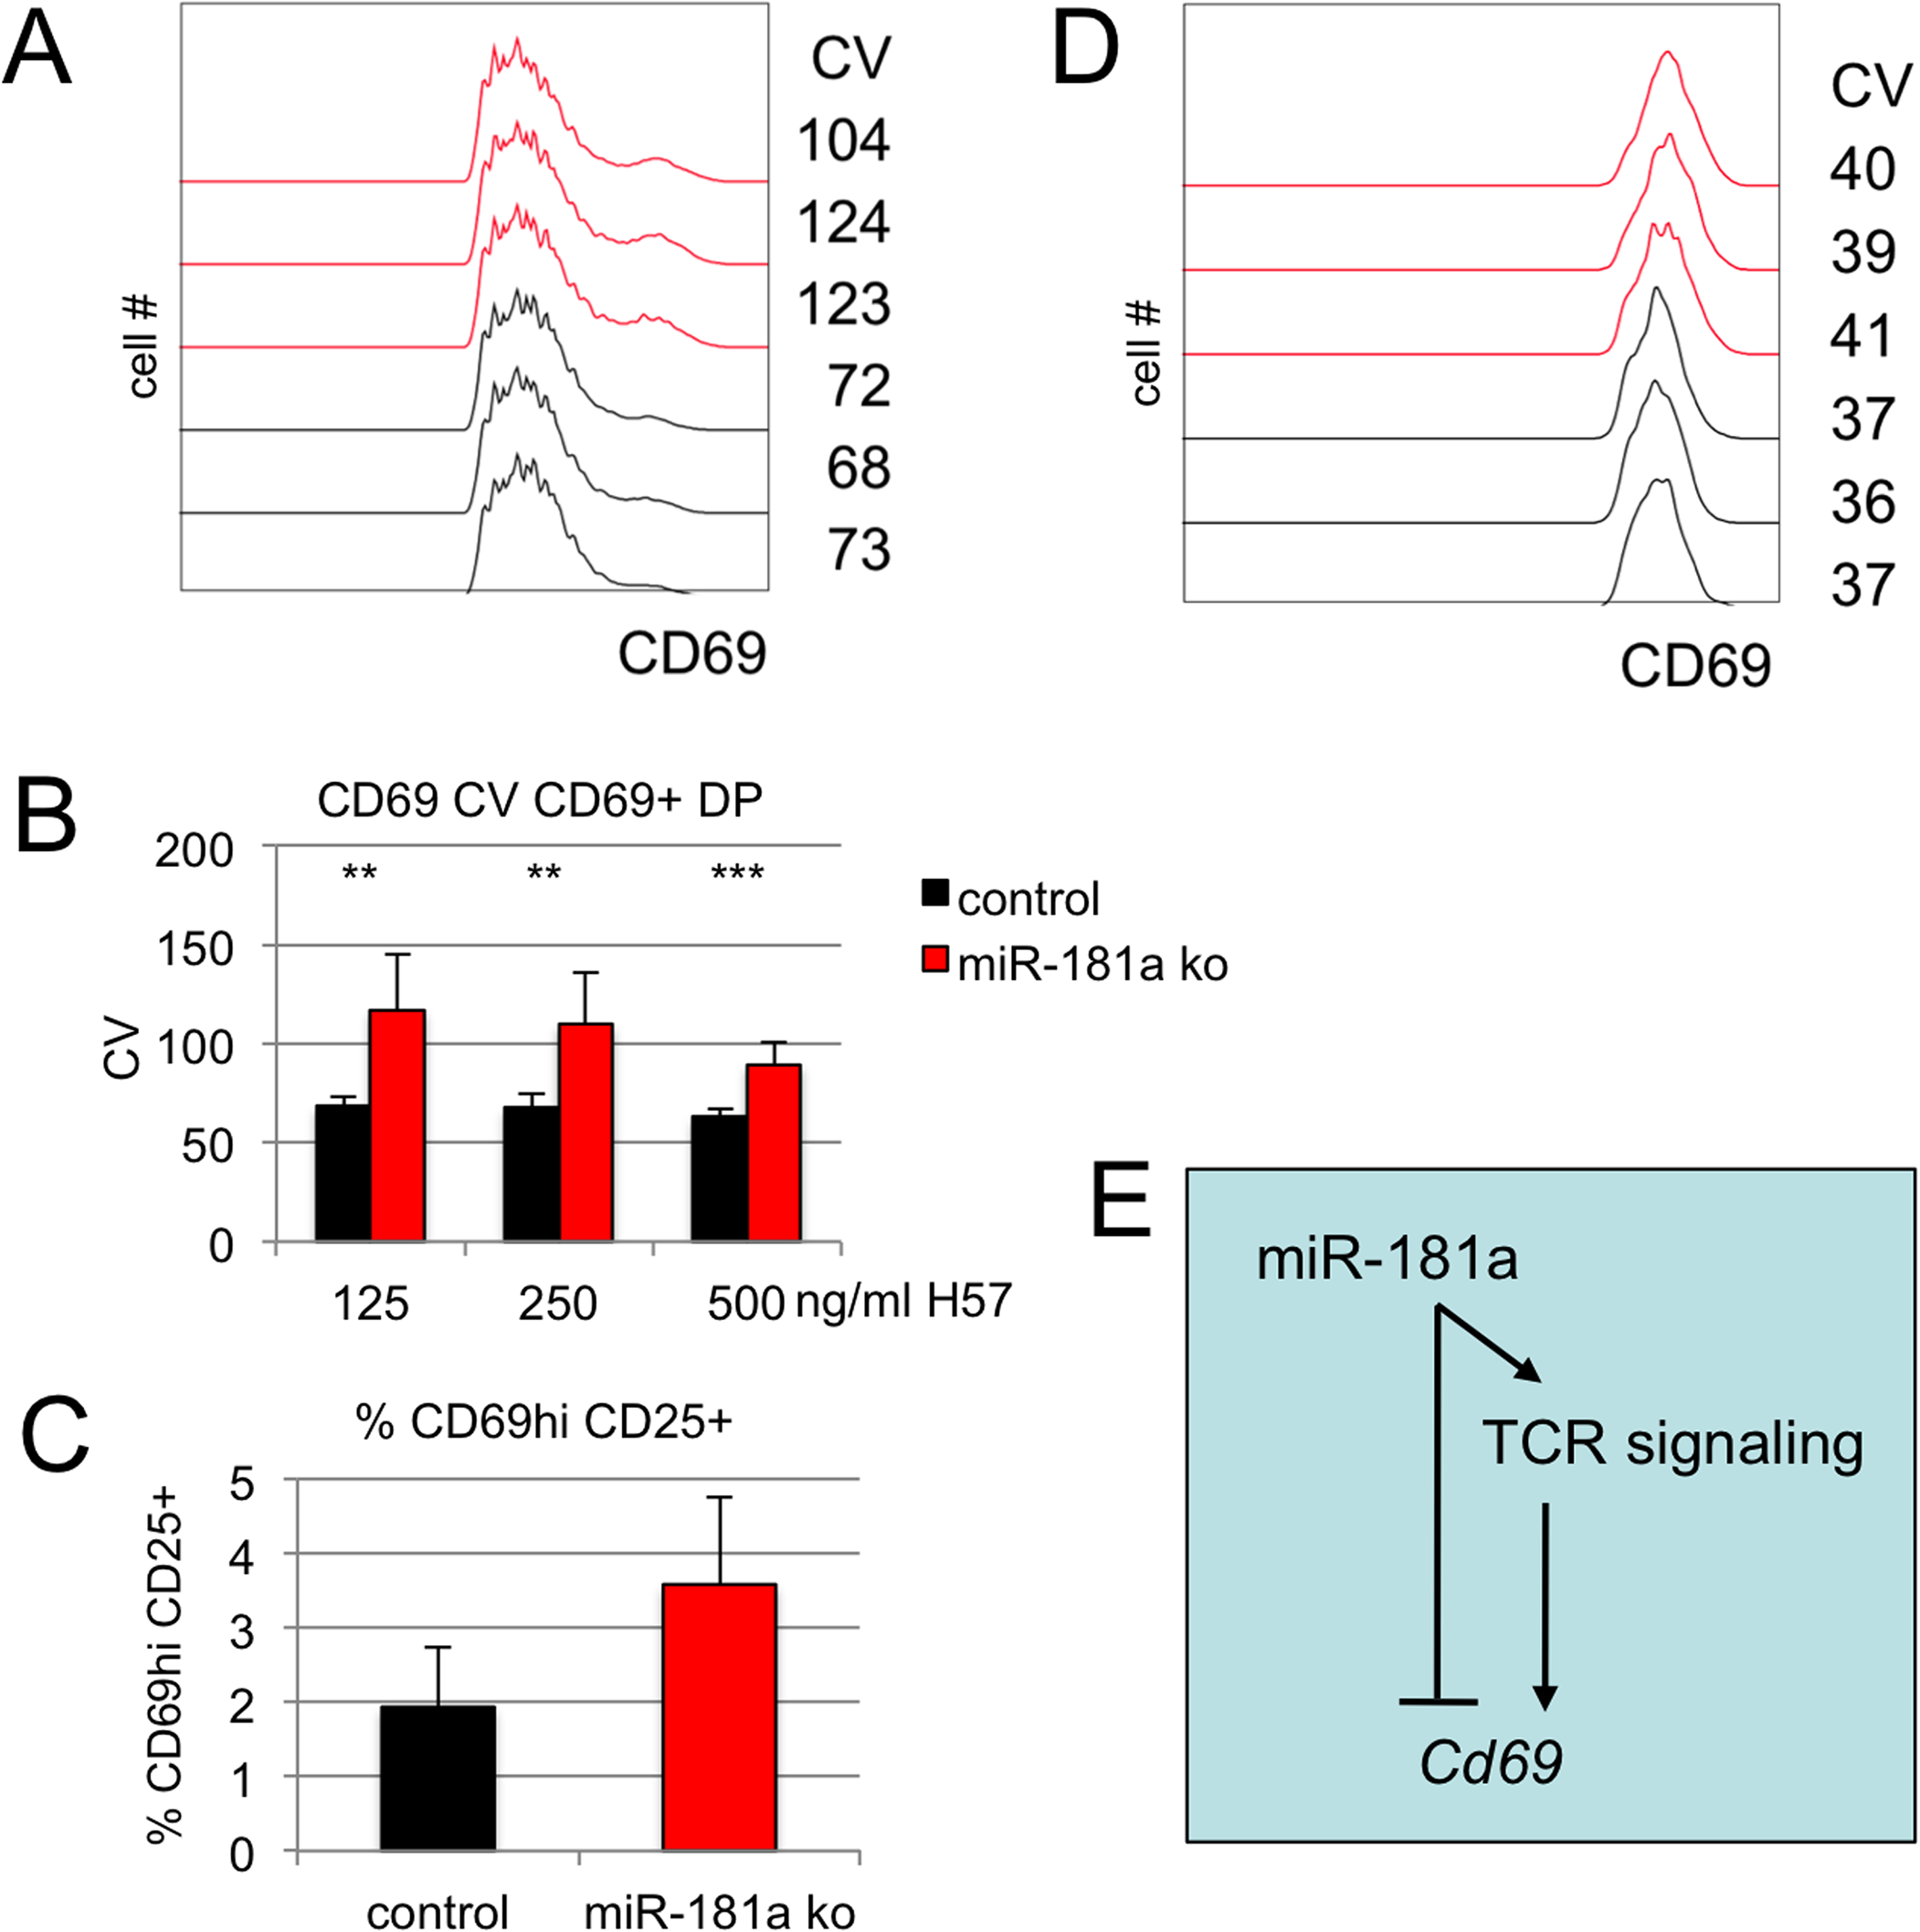 miR-181a controls cell-to-cell variation in CD69 expression.